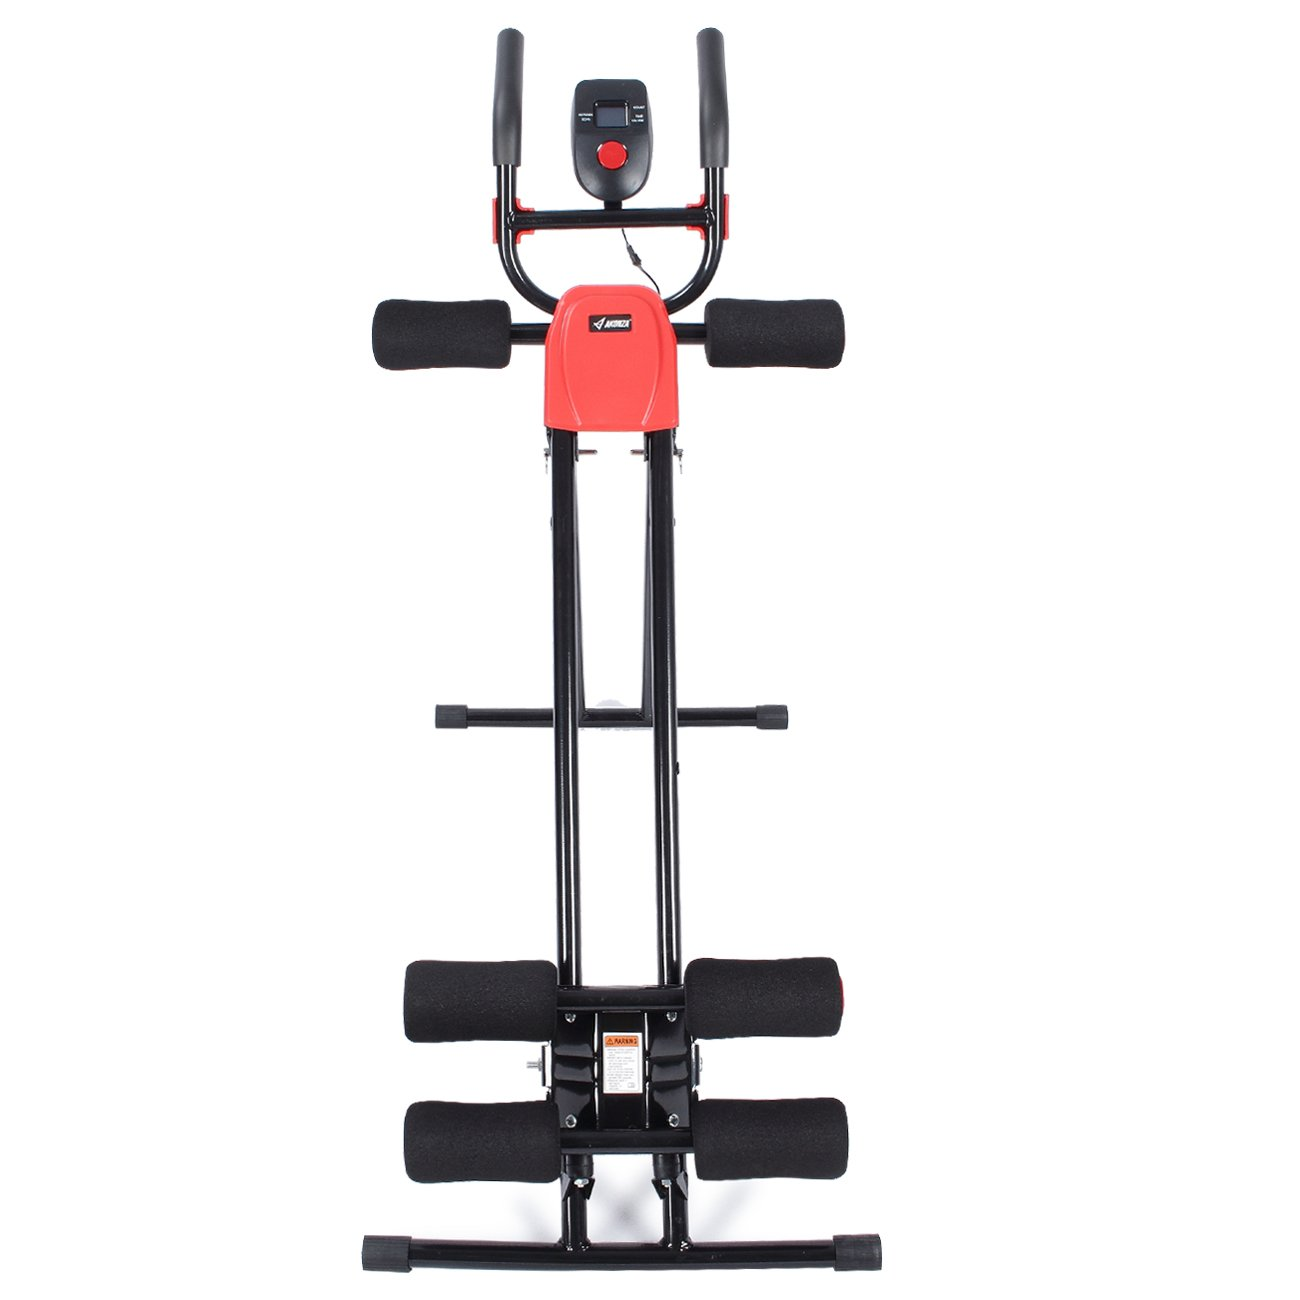 Akonza Abdominal Core Power Ab Trainer Adjustable Workout Fitness Cruncher Station with LCD Display, Red Black